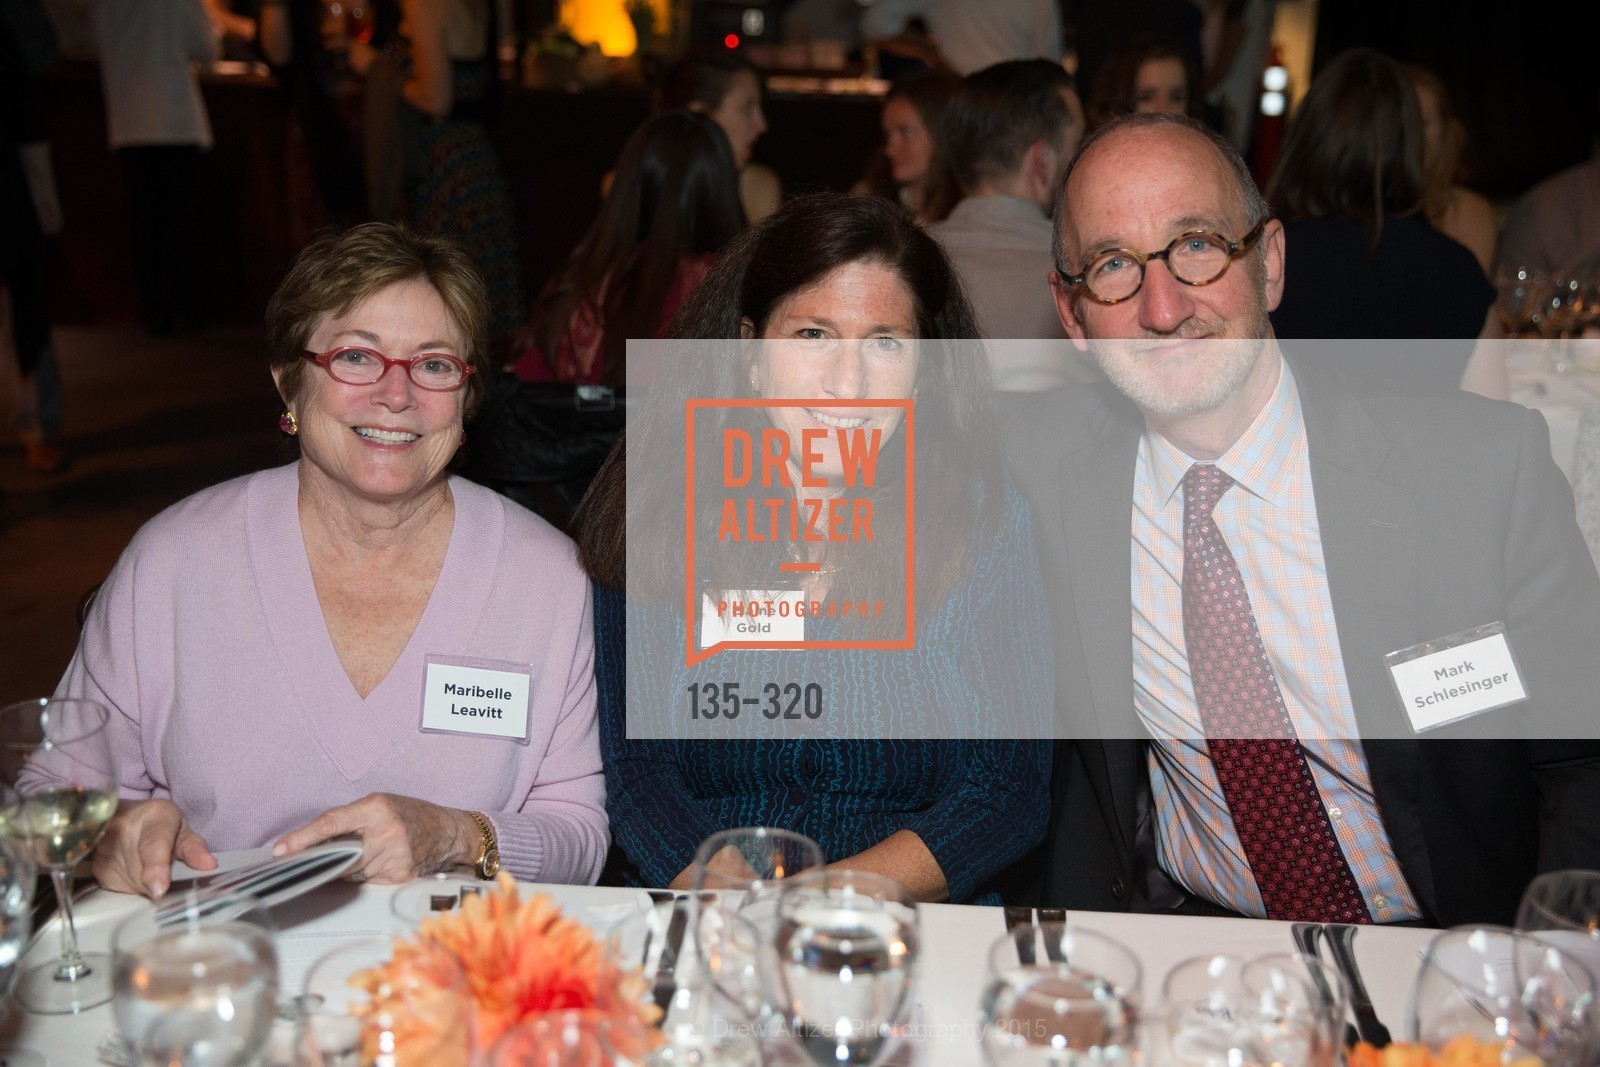 Maribelle Leavitt, Elaine Gold, Mark Schlesinger, SF - Marin Food Bank Presents ONE BIG TABLE, SF- Marin Food Bank. 900 Pennsylvania Ave, September 26th, 2015,Drew Altizer, Drew Altizer Photography, full-service agency, private events, San Francisco photographer, photographer california